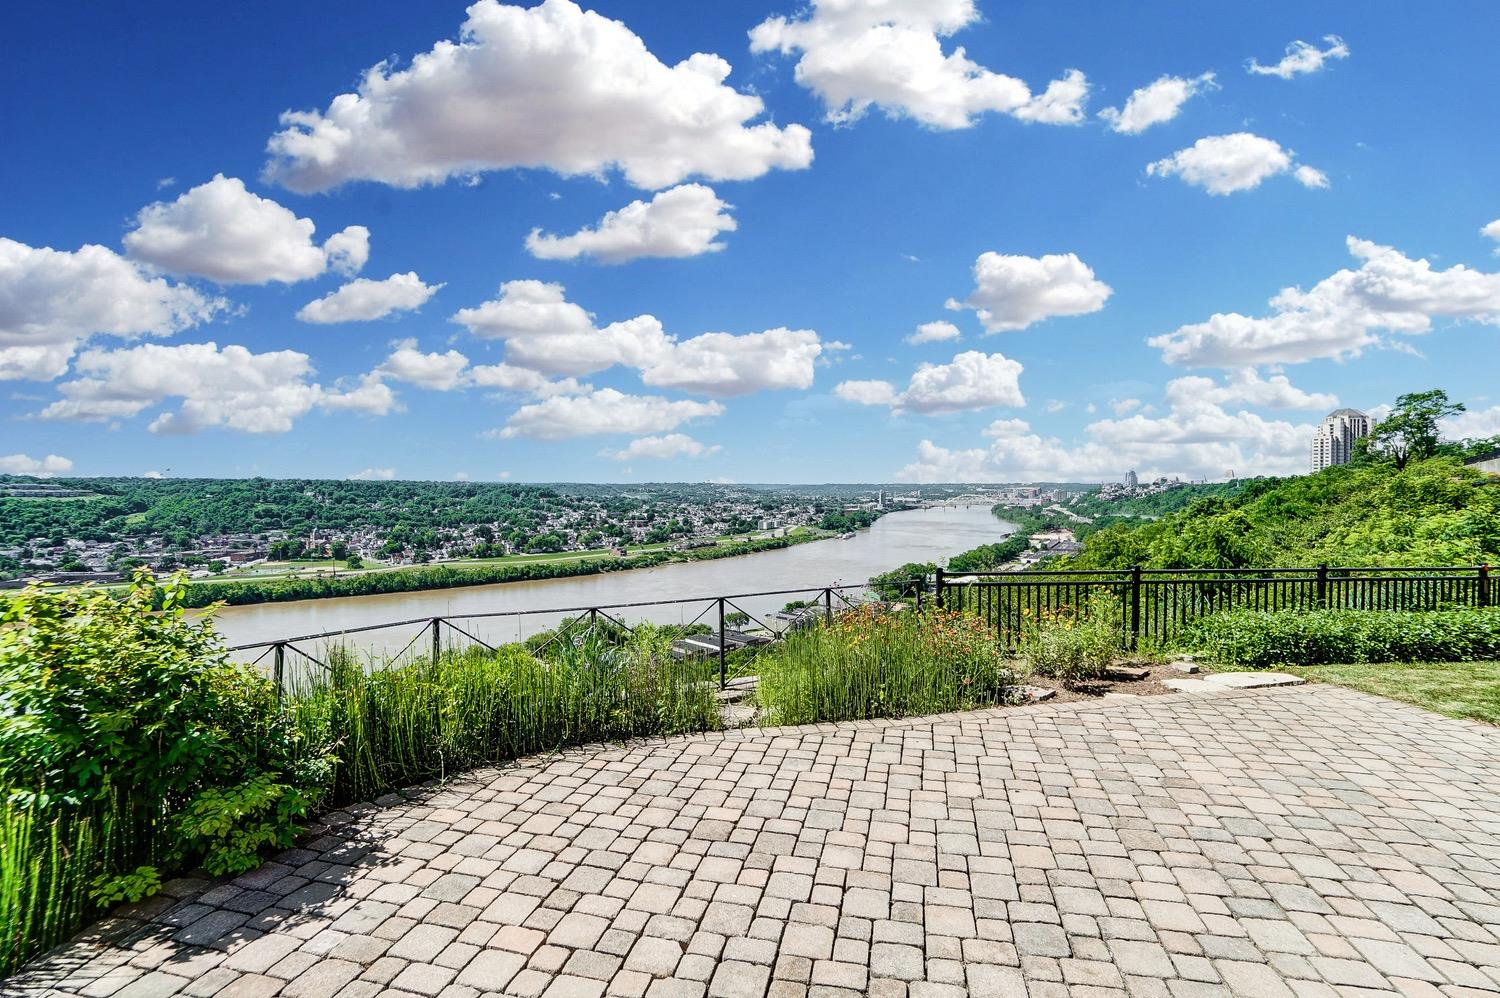 Southwest-facing view of the Ohio River, downtown Cincinnati and the Kentucky banks.